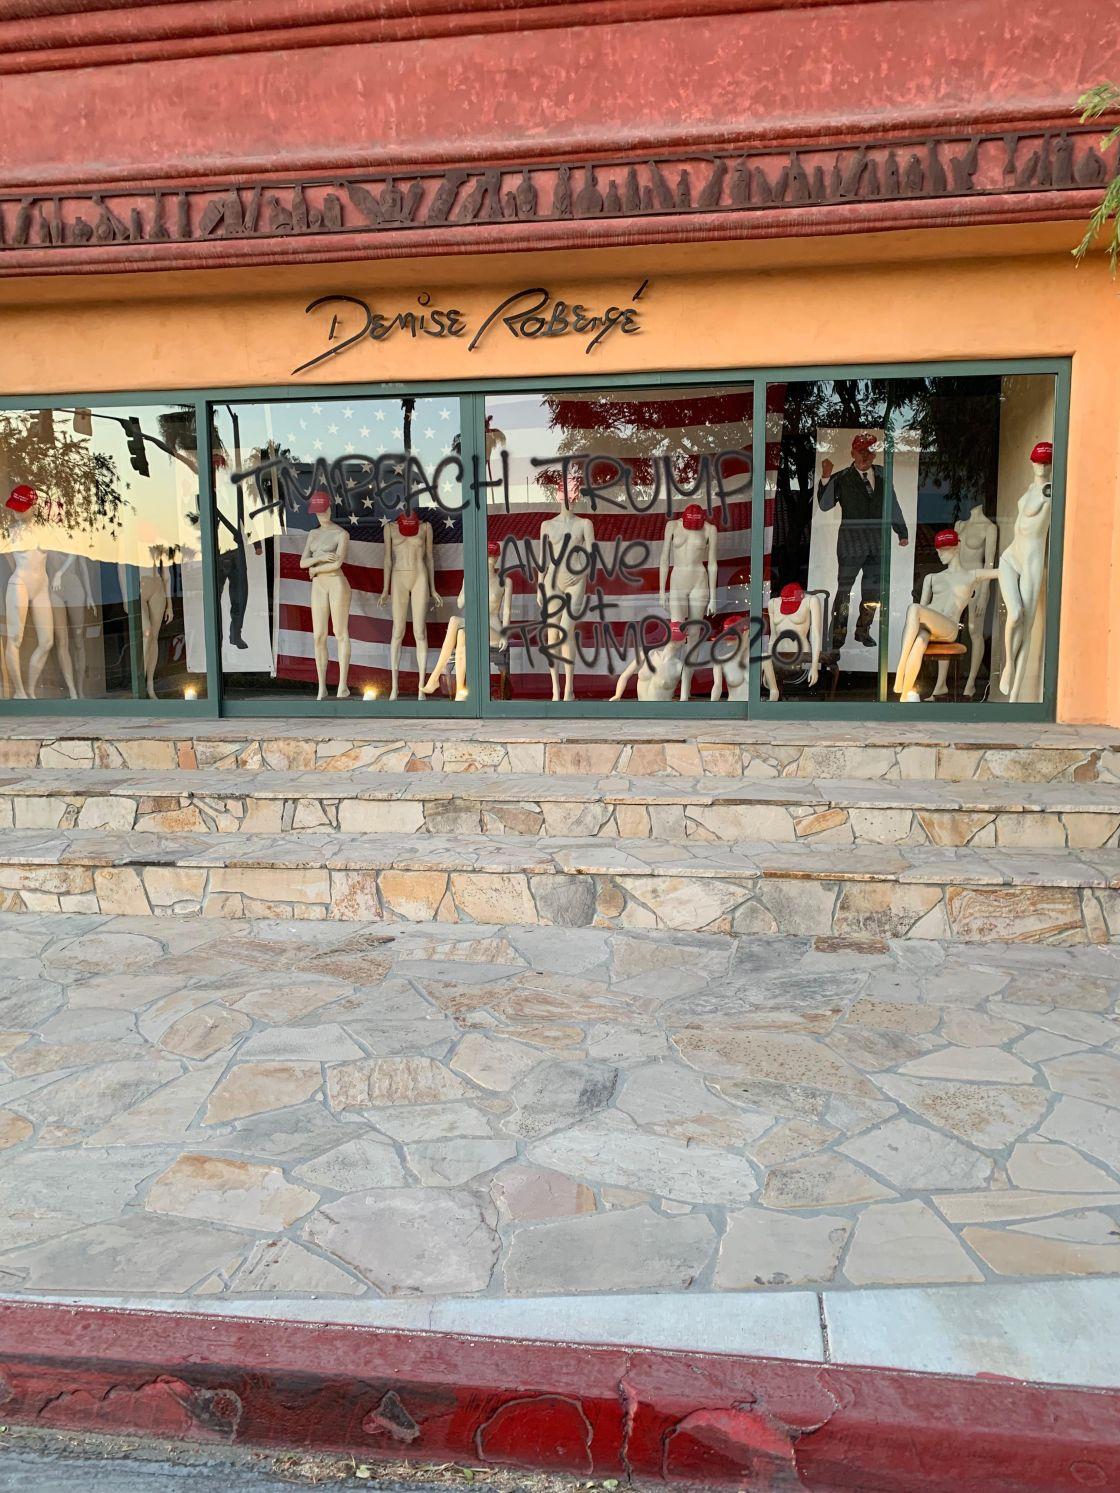 Political Window Display in Palm Desert Causing Controversy